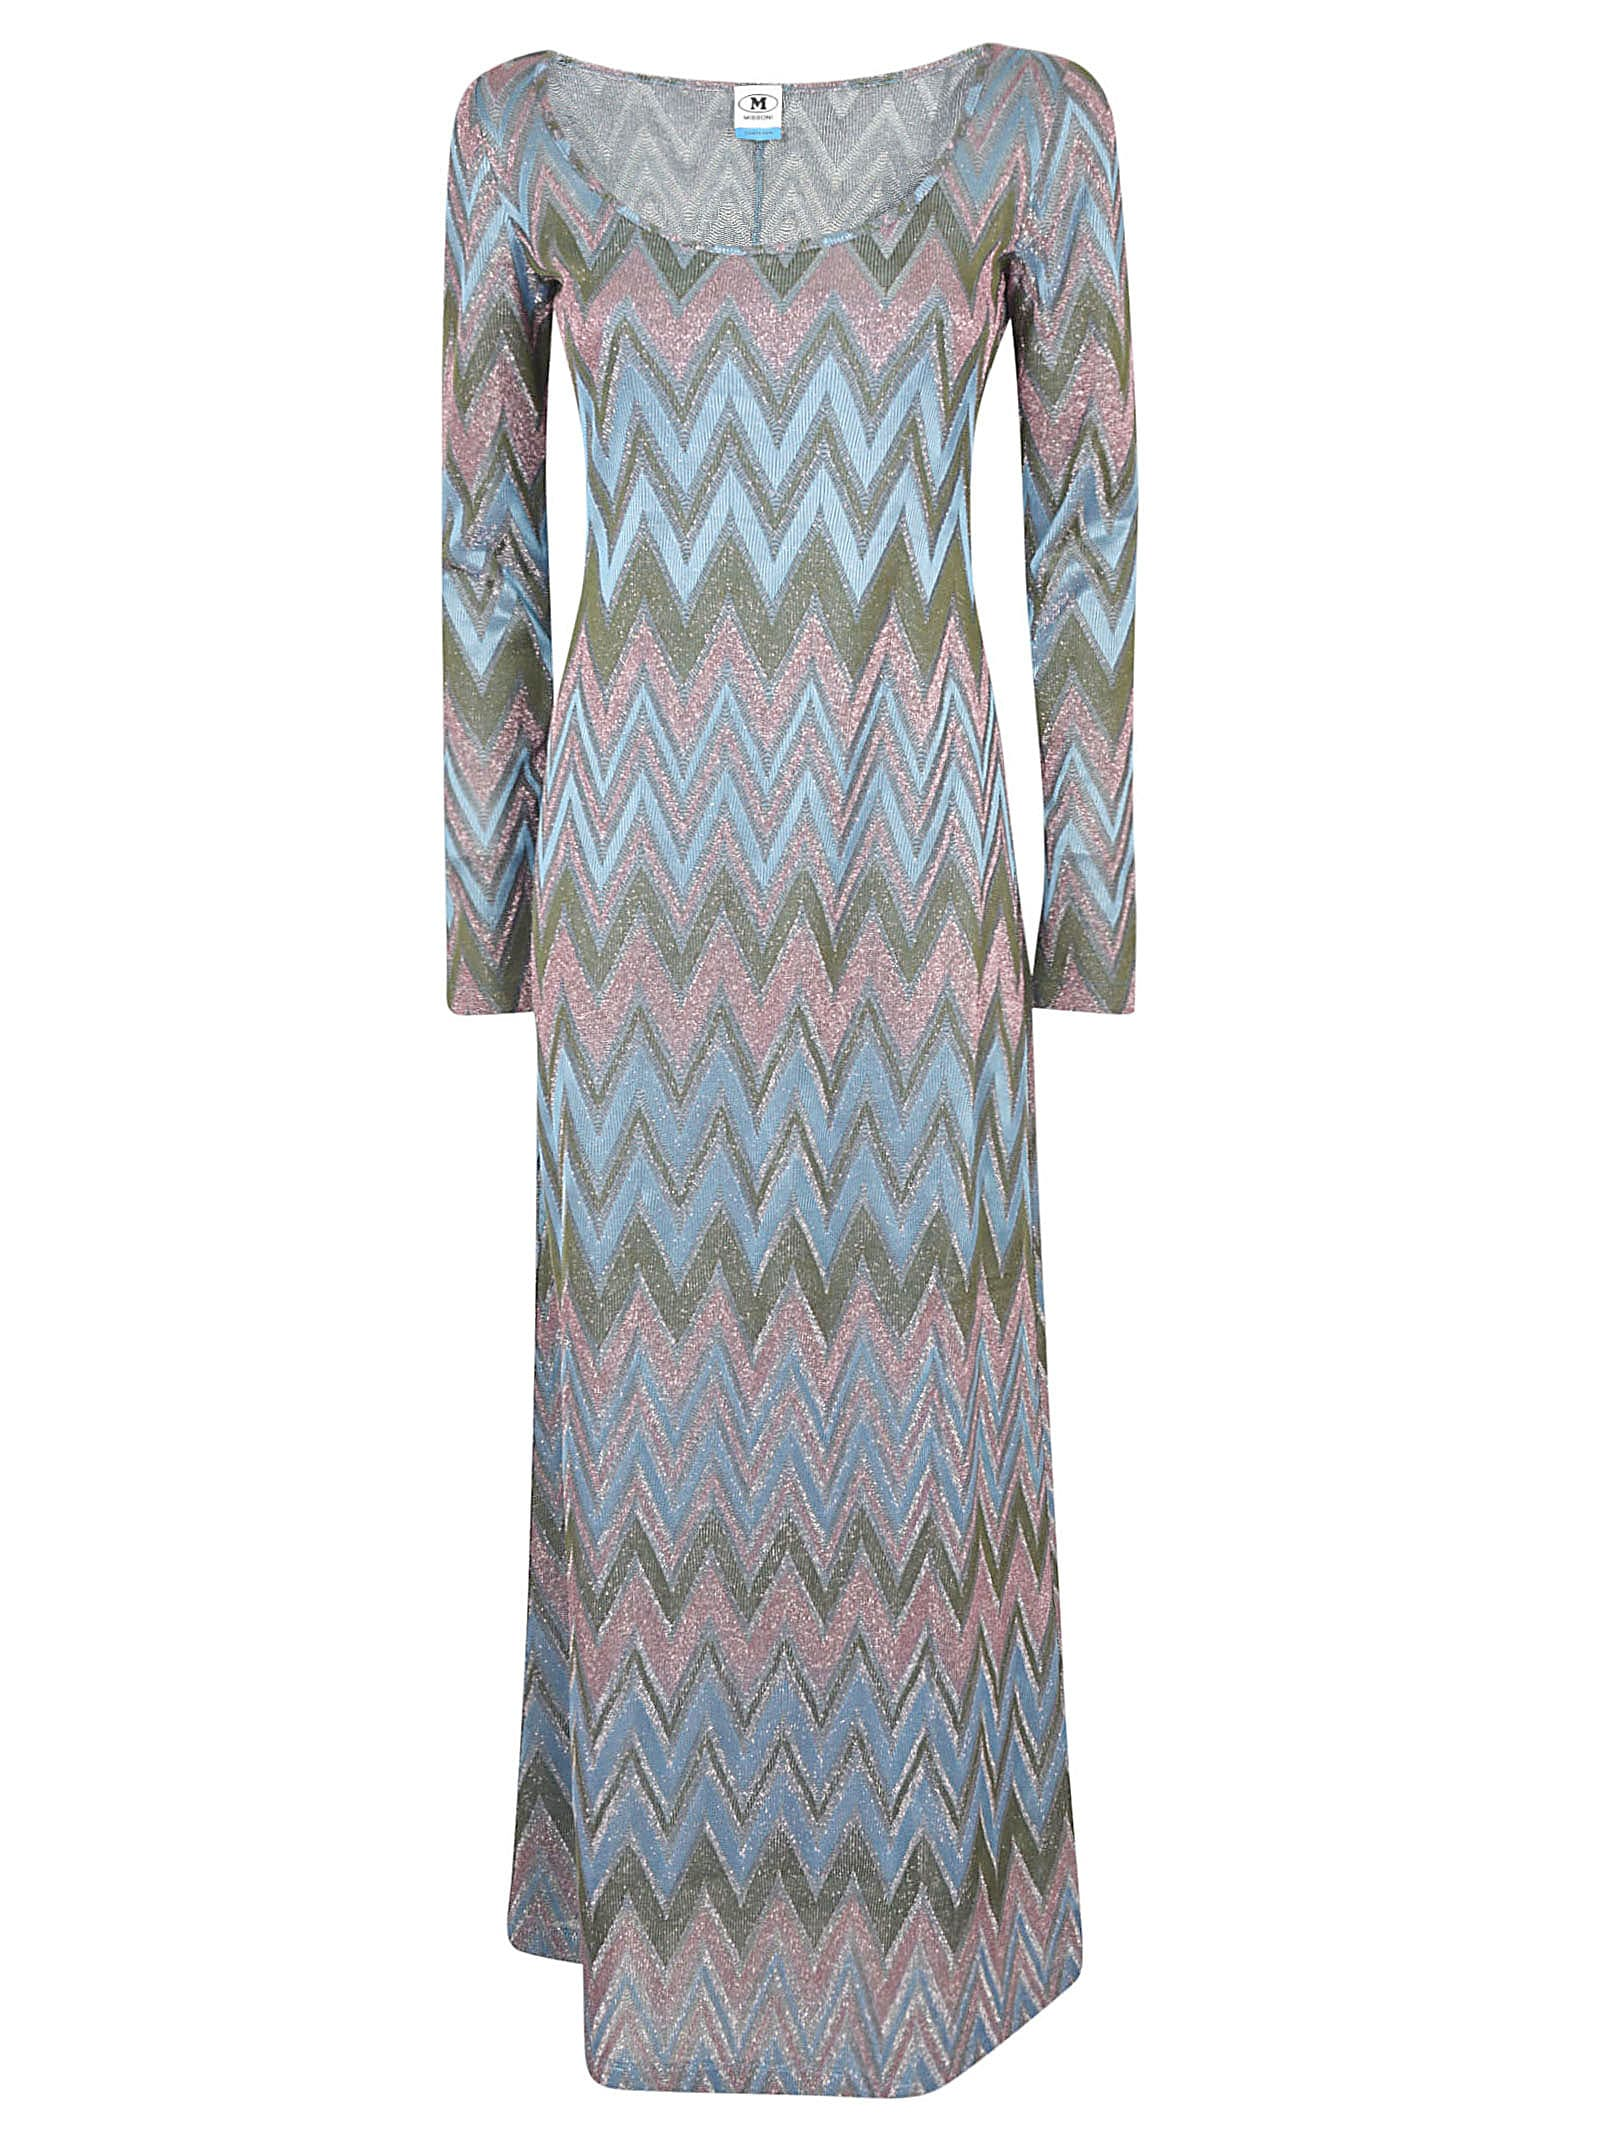 Buy M Missoni Zigzag Long-sleeved Dress online, shop M Missoni with free shipping